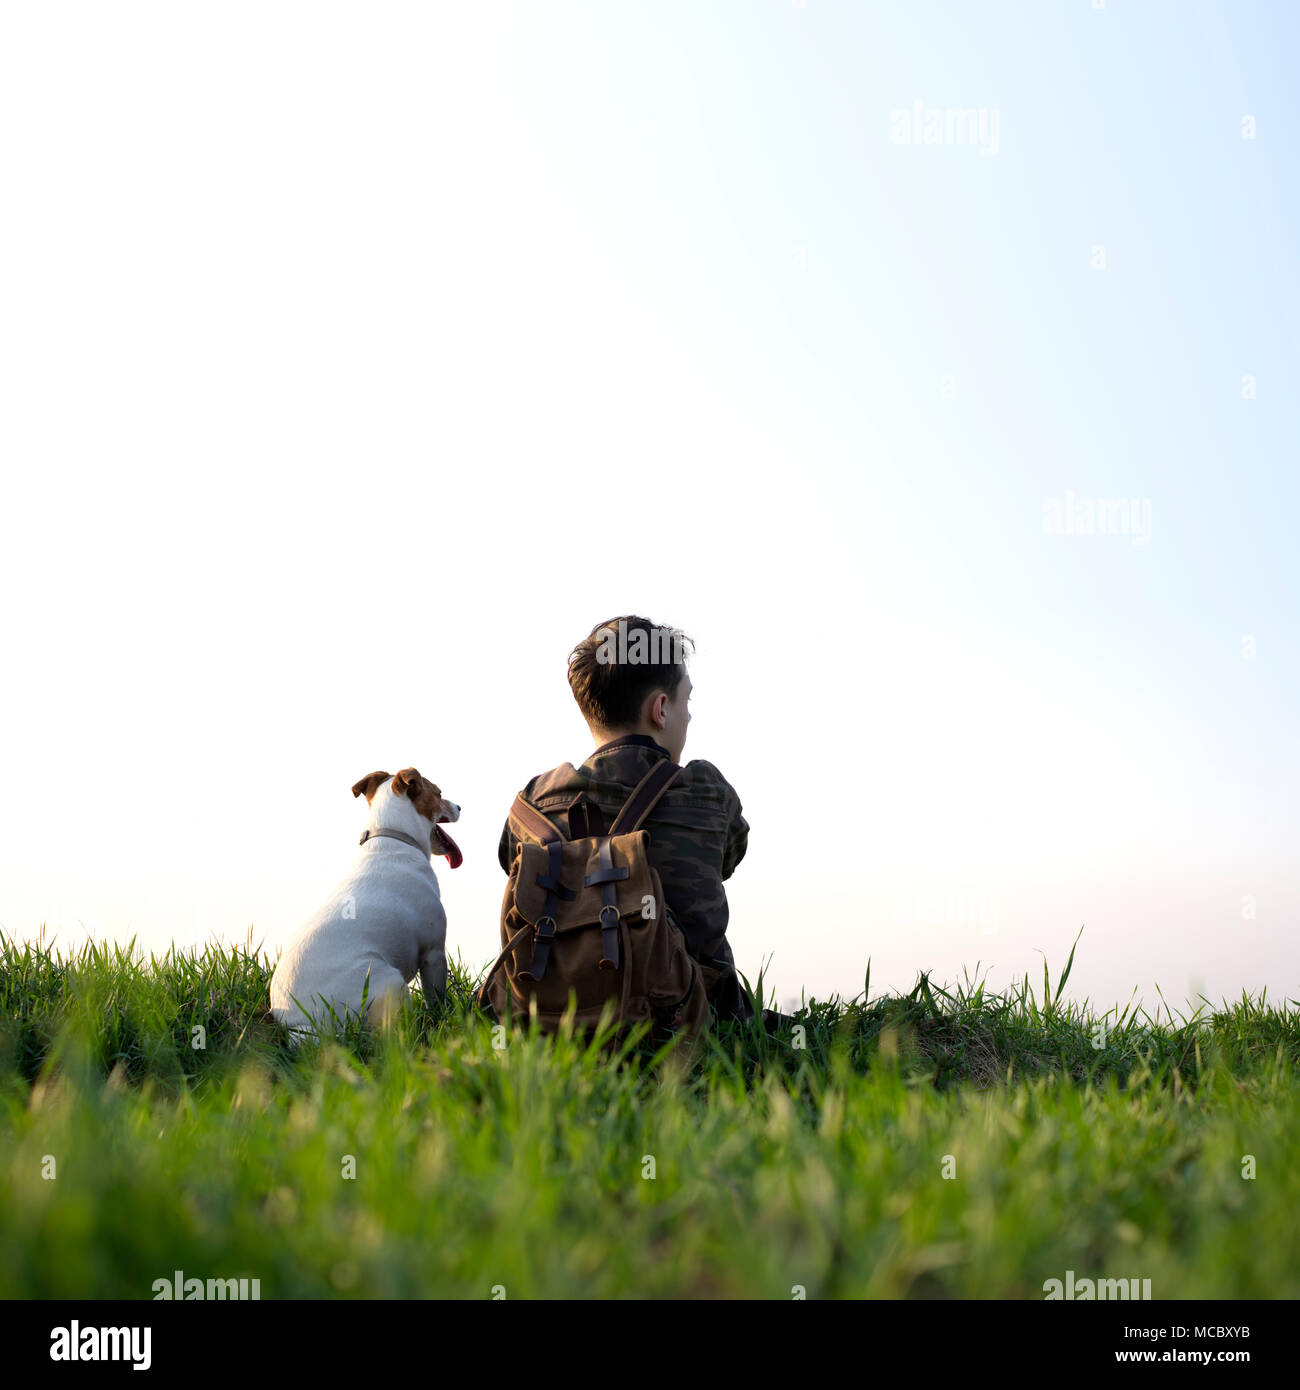 Teenager on green lawn with small white dog - Stock Image